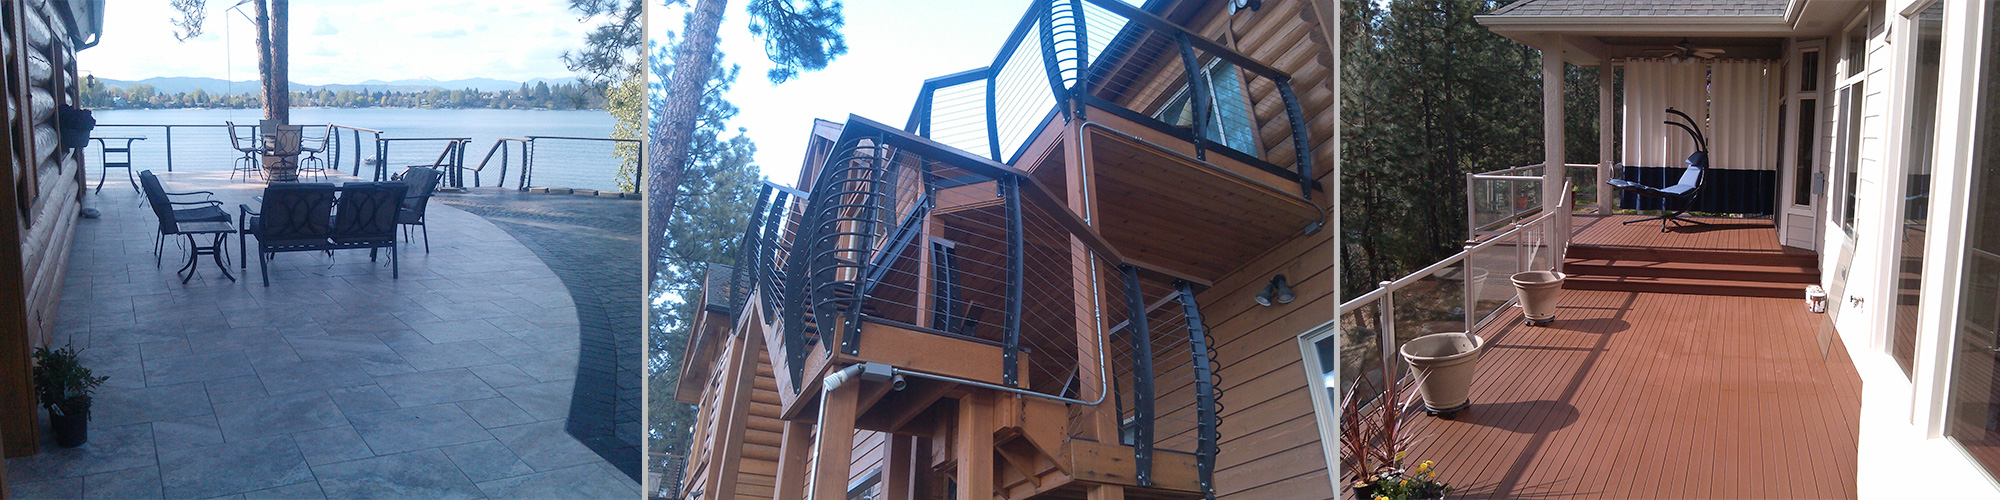 Outdoor Construction – Spokane, WA